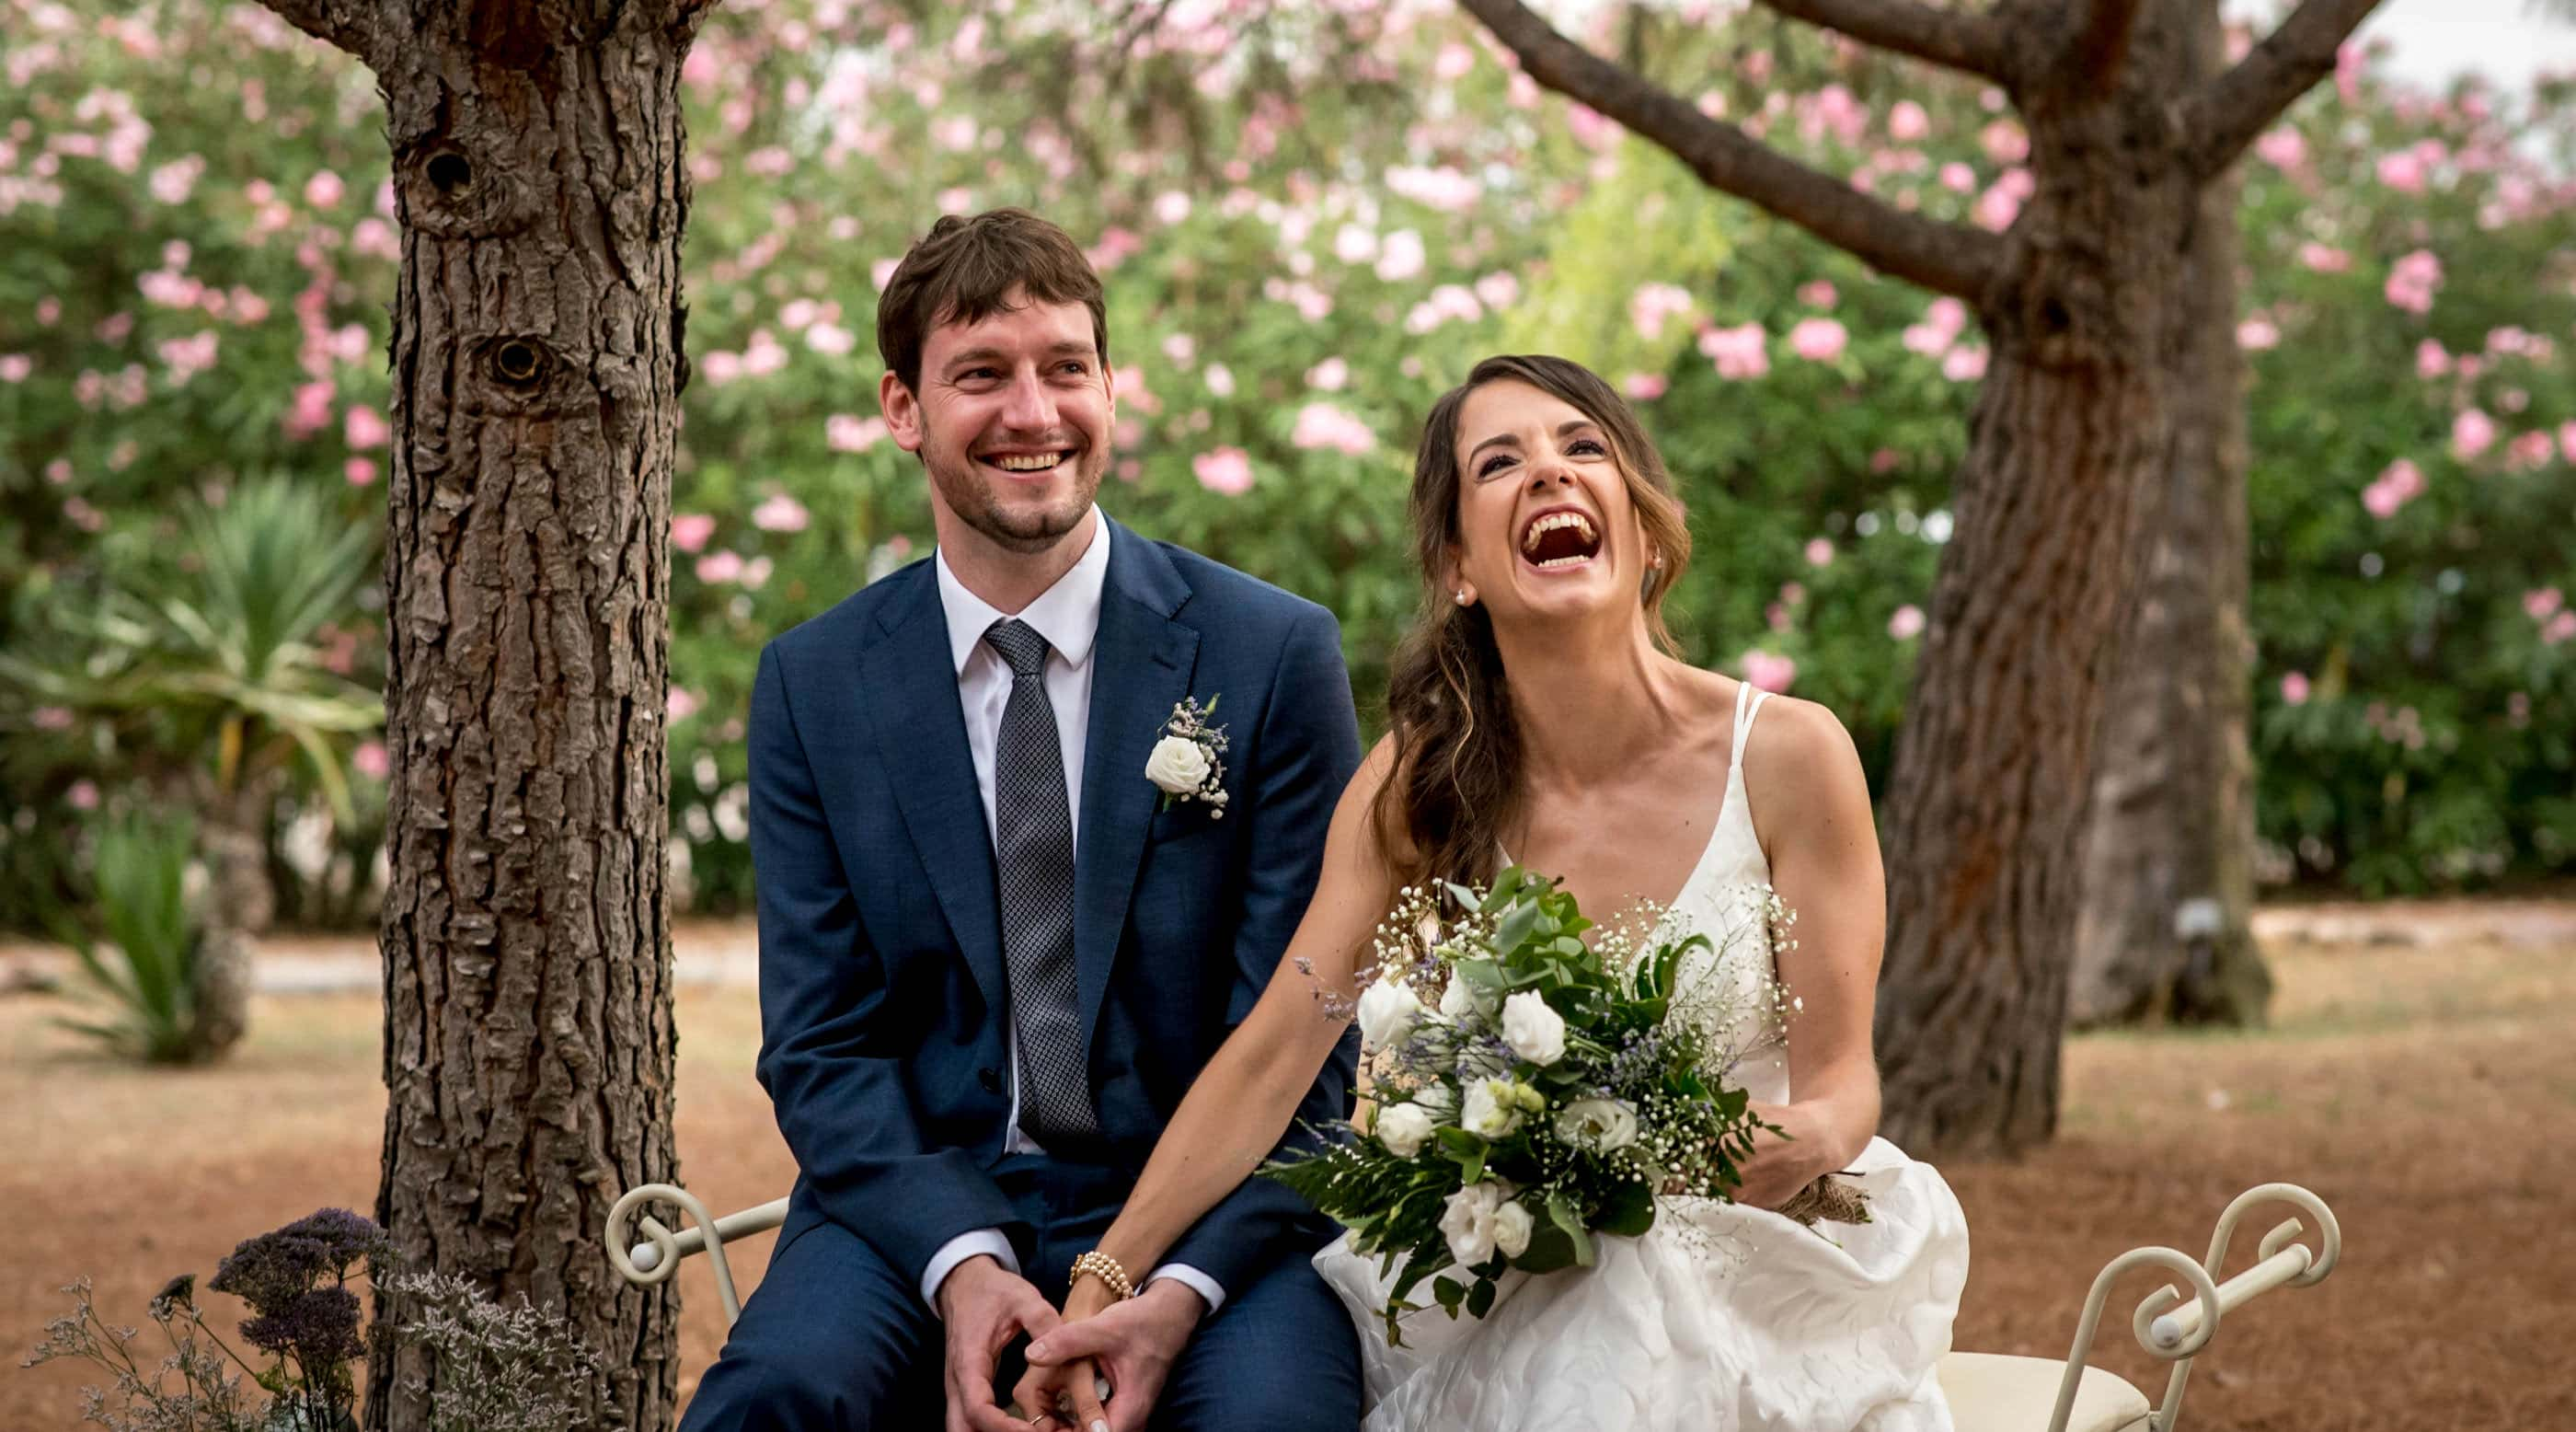 couple laughing during their outdoor wedding ceremony